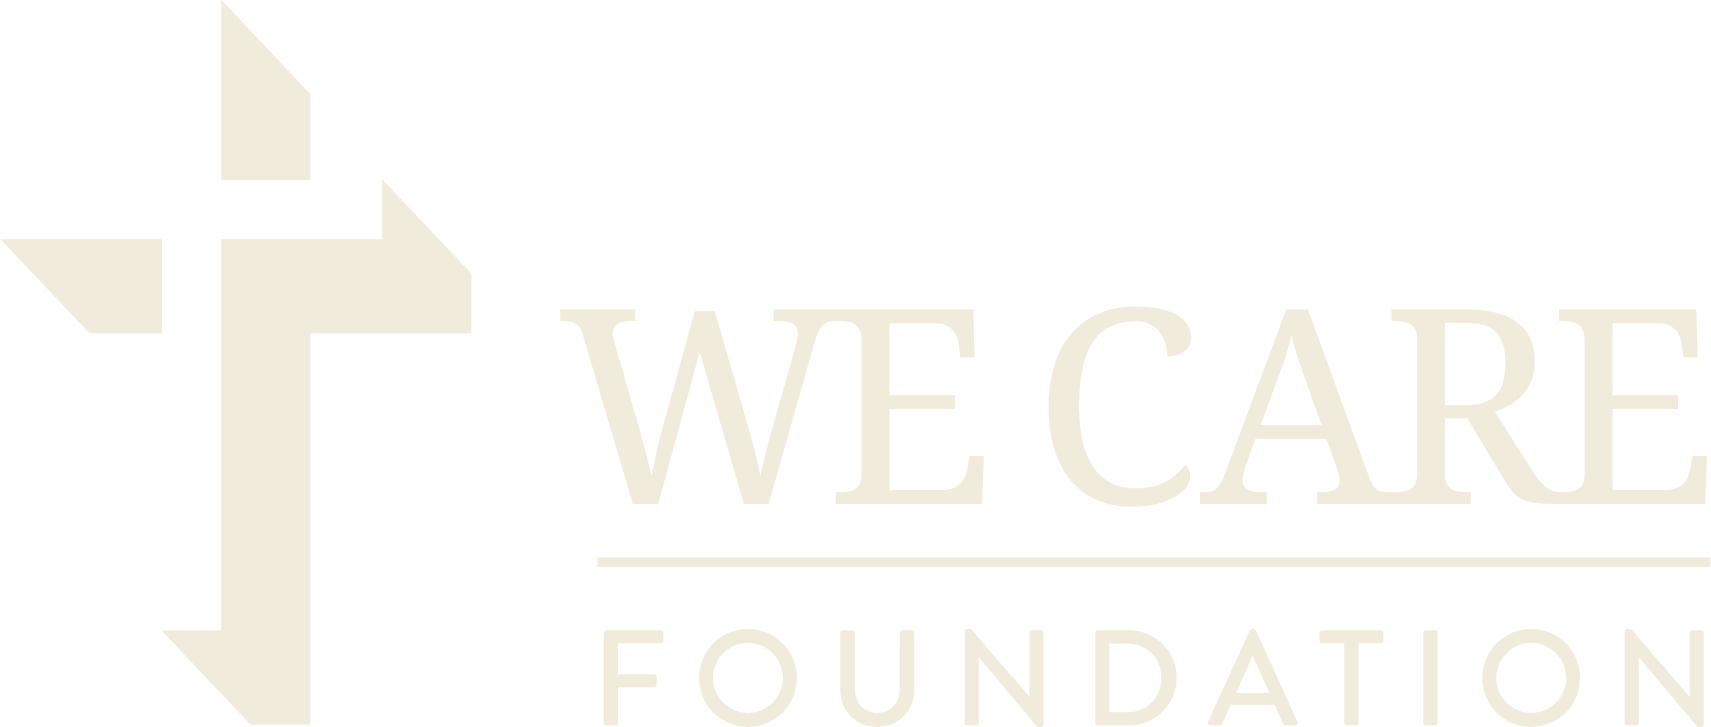 We Care Foundation